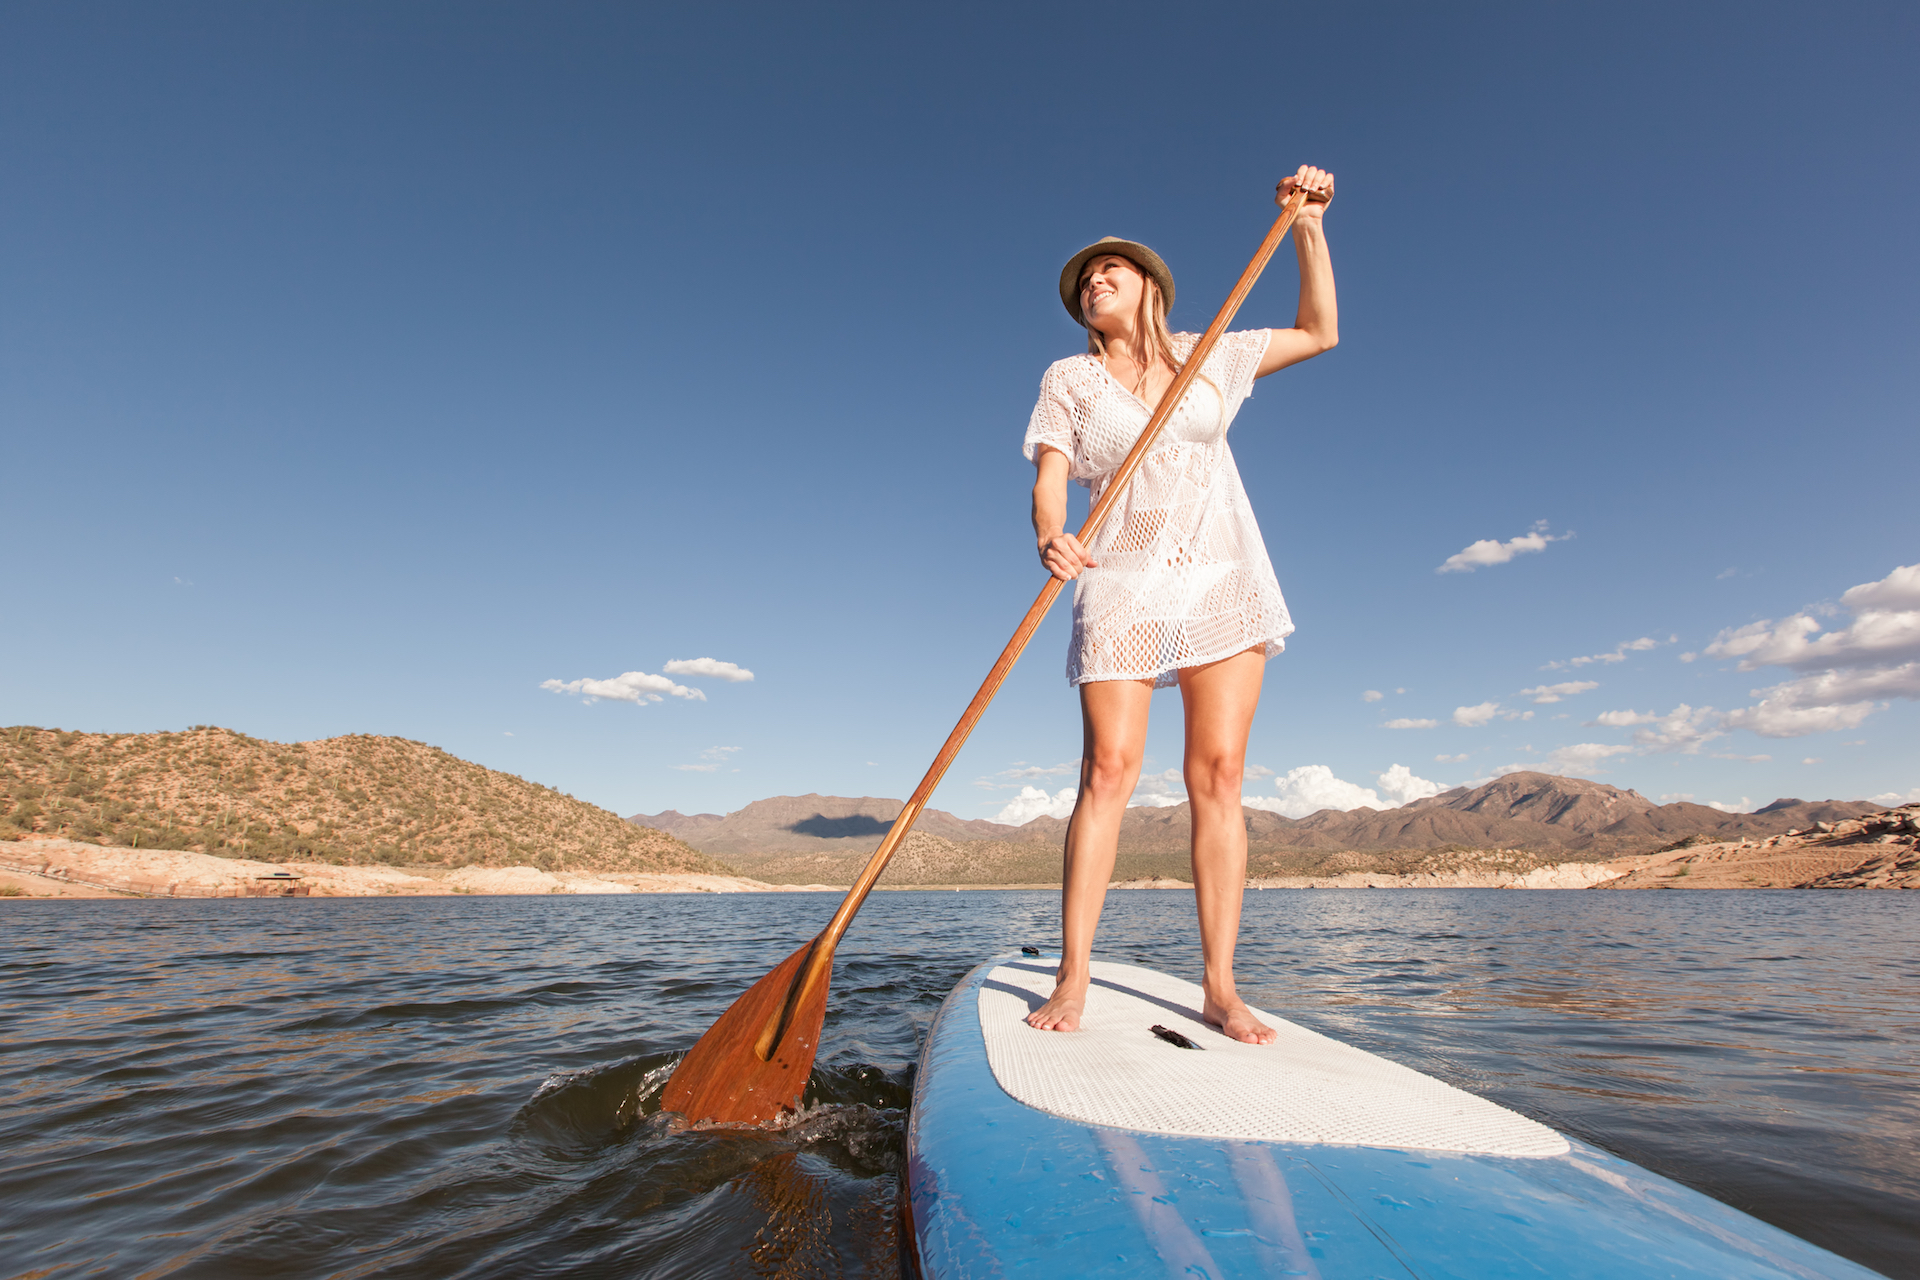 Woman stand up paddle boarding with some mountains in the background